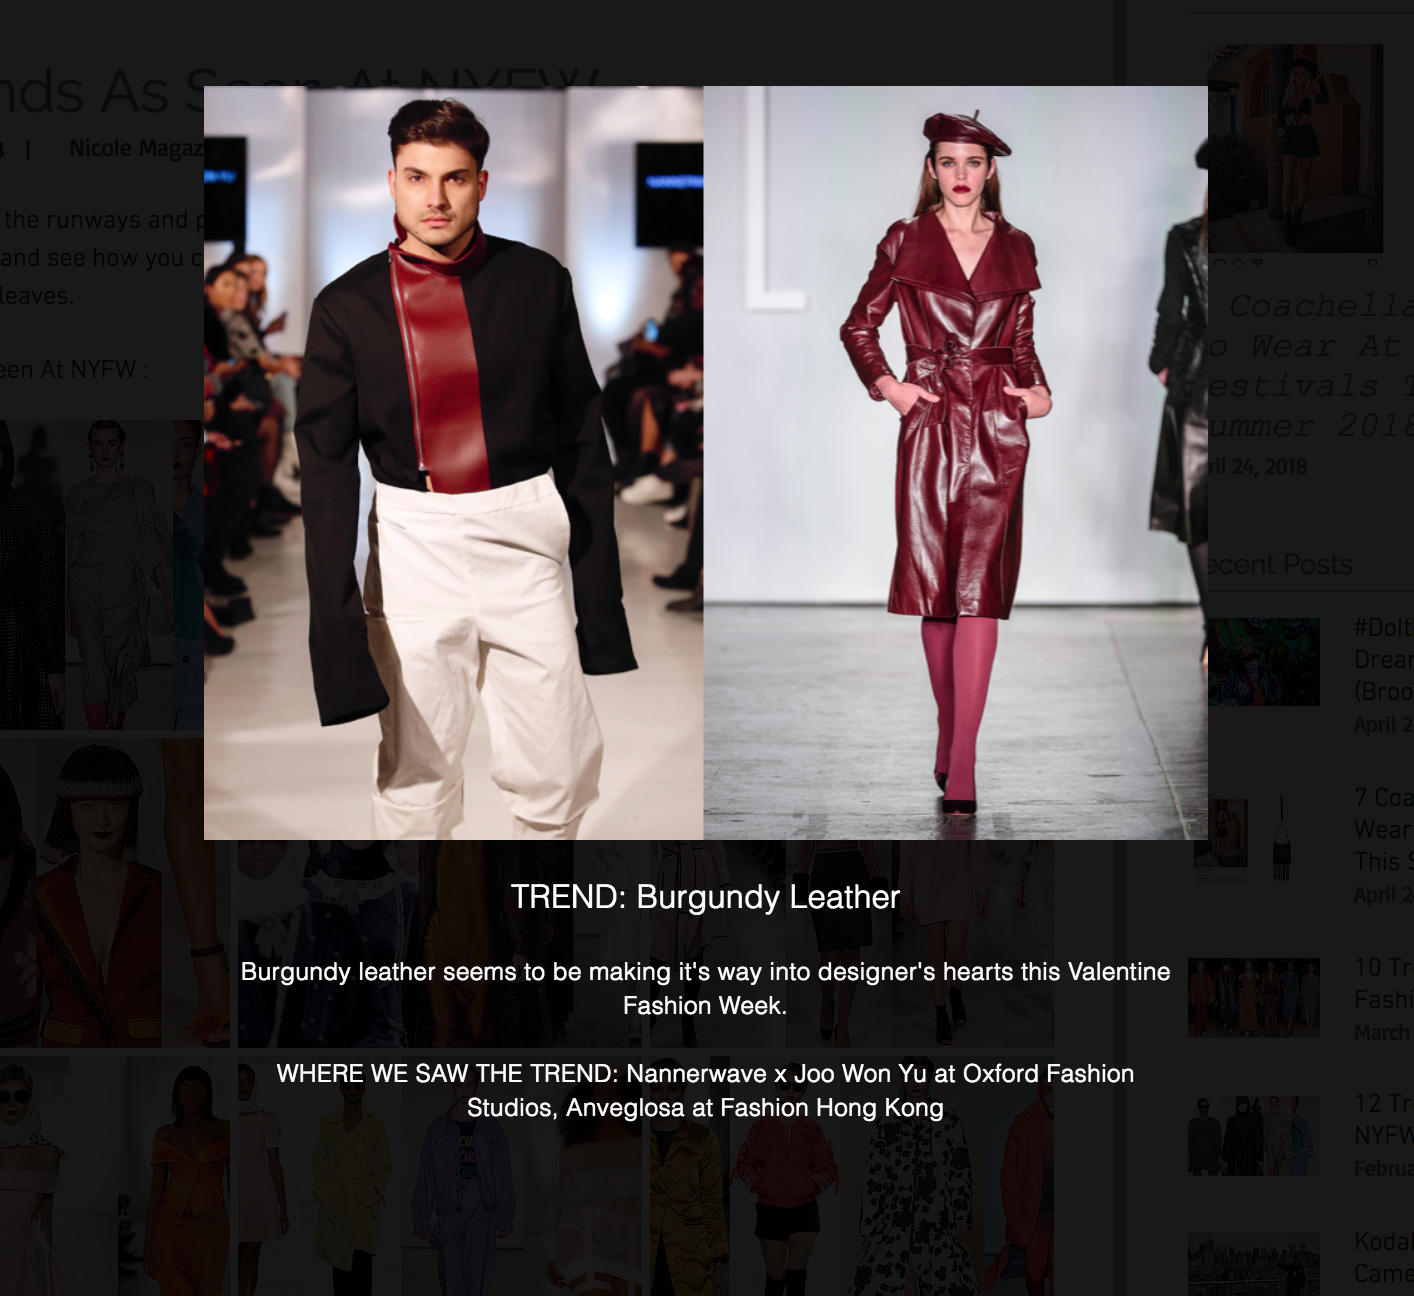 nicole magazine - http://www.nicolemagazine.com/single-post/2018/02/20/12-Trends-As-Seen-At-NYFW